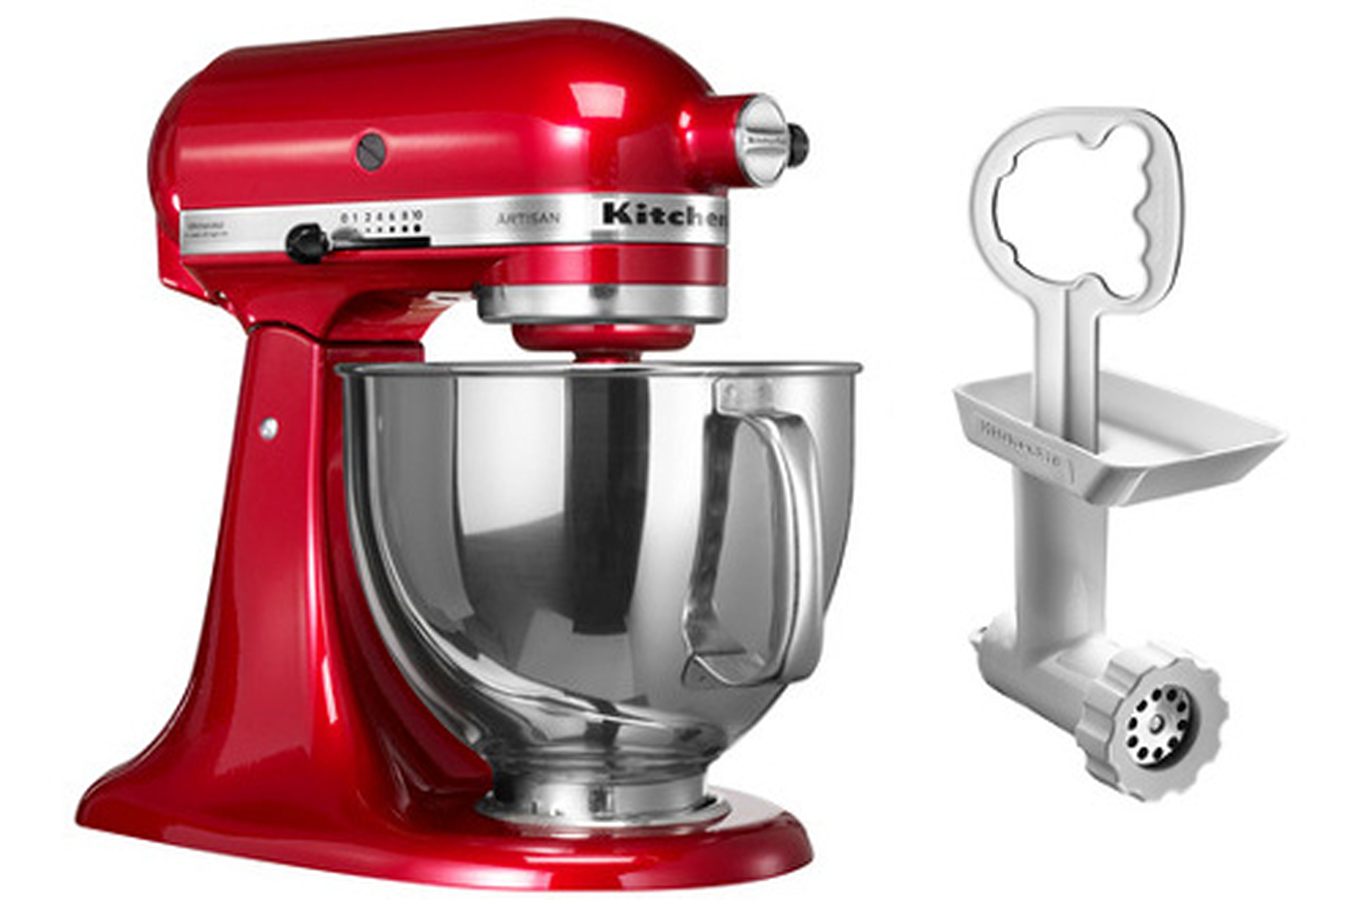 patisserie kitchenaid